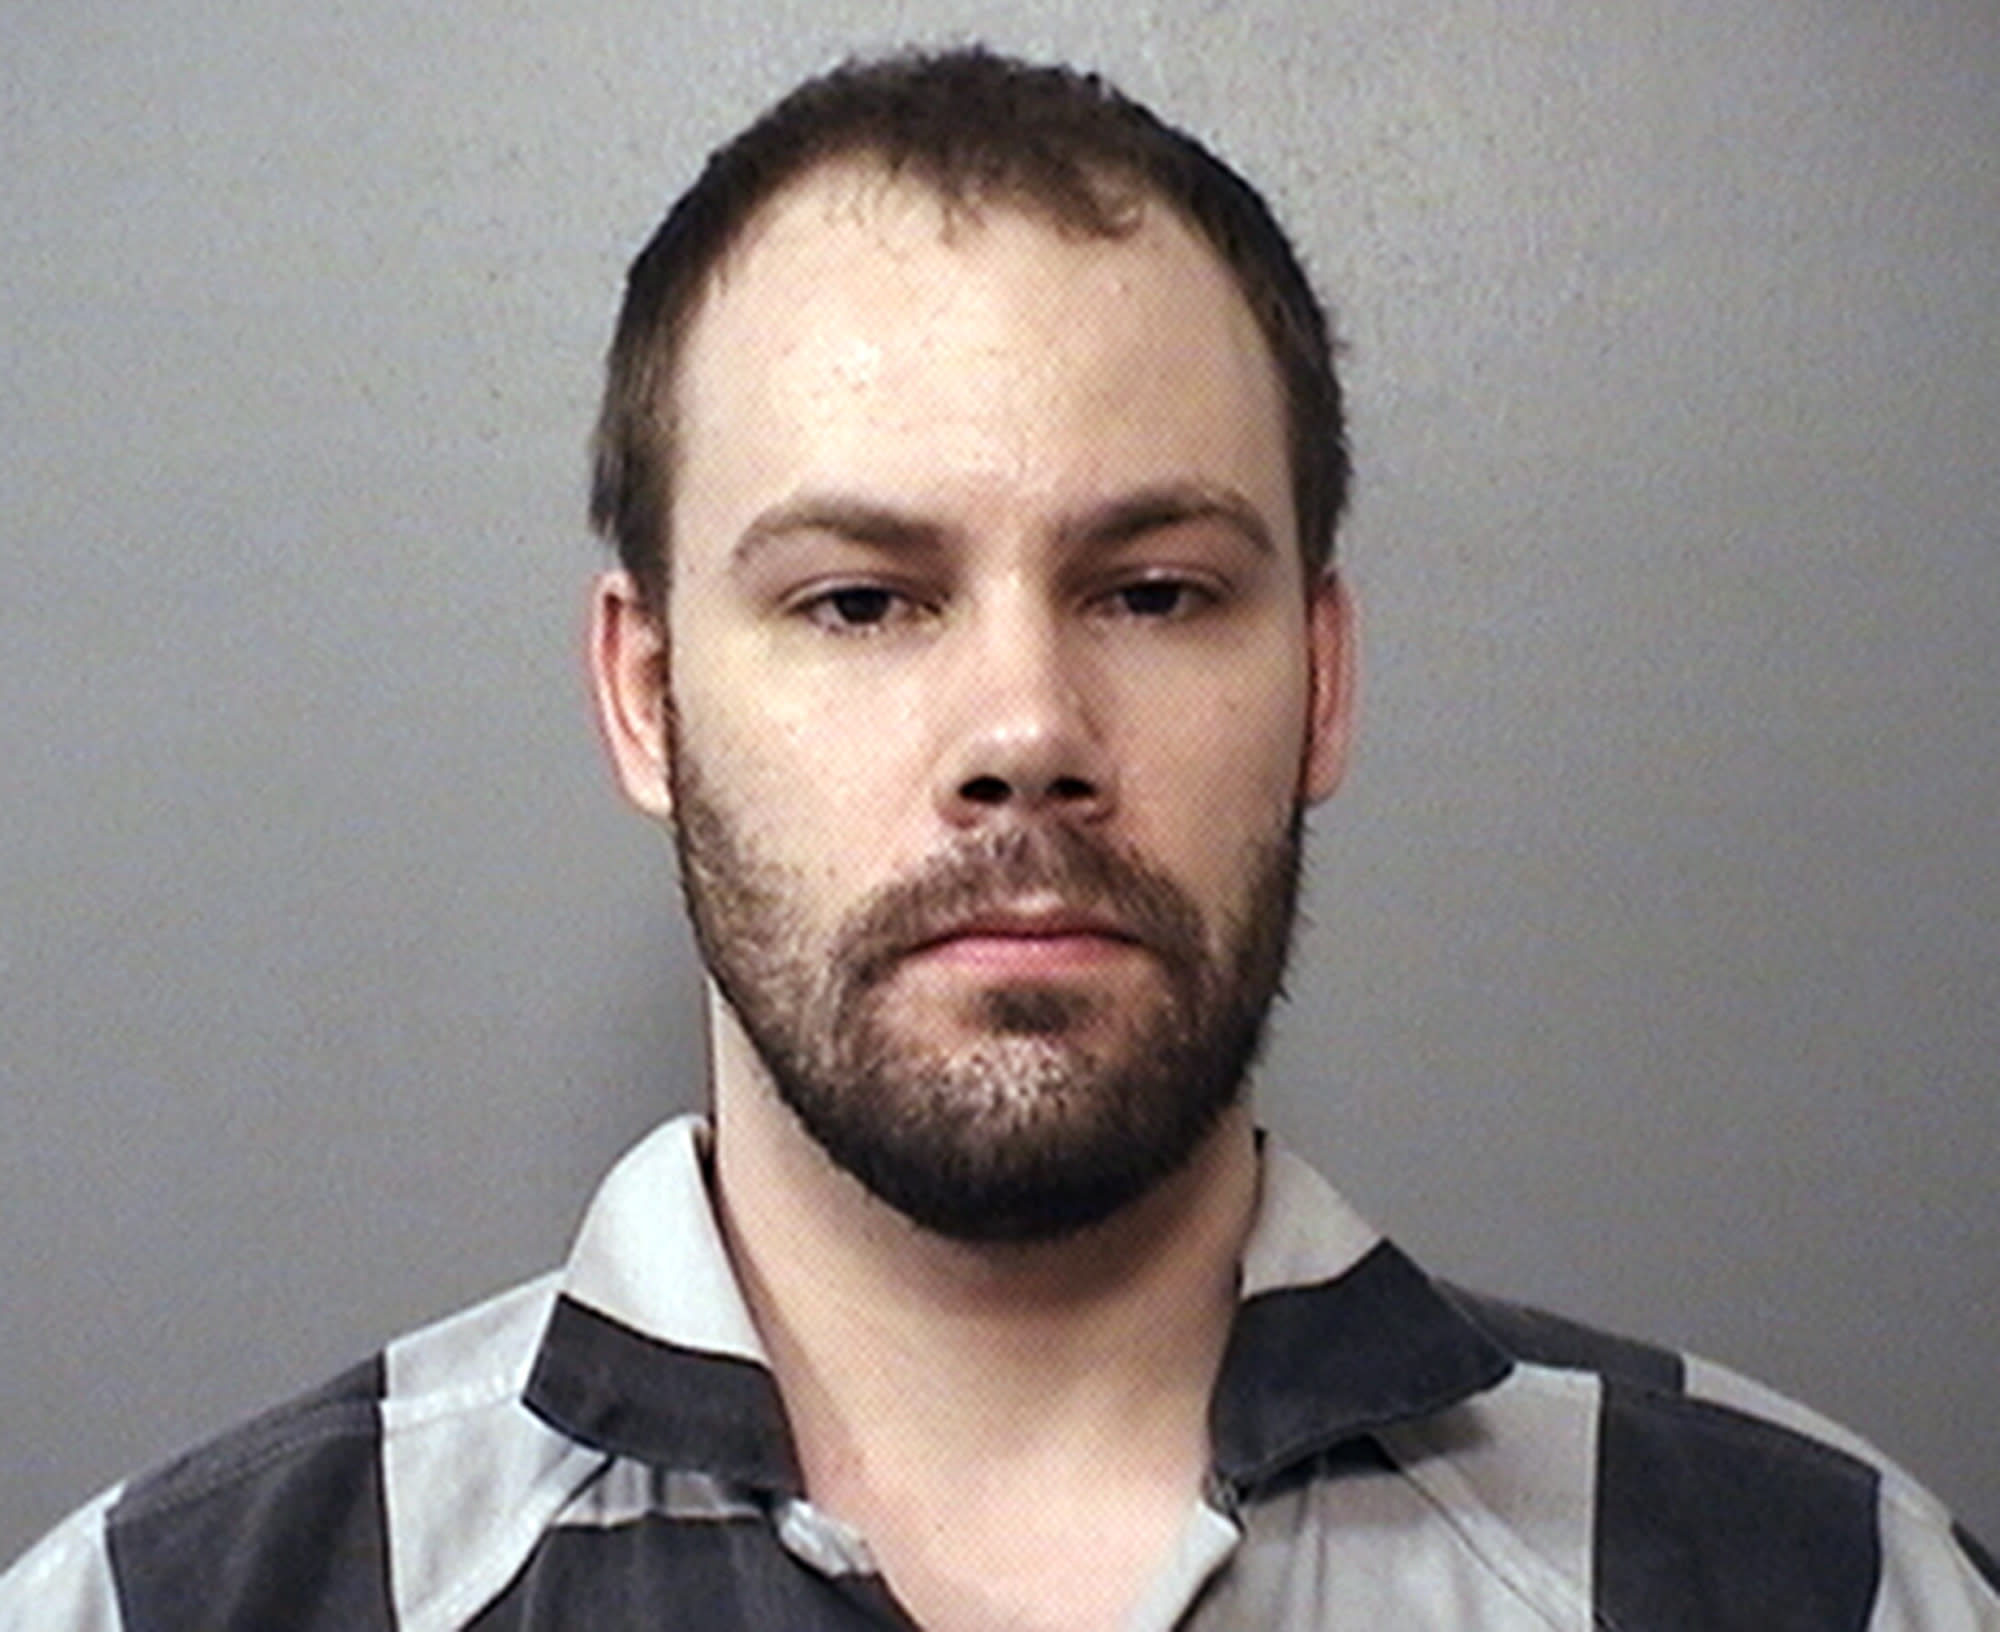 FILE - This file photo provided by the Macon County Sheriff's Office in Decatur, Ill., shows Brendt Christensen. Jurors on Monday, June 24, 2019 in Peoria, Ill., have convicted Christensen, a former University of Illinois doctoral student in the slaying of Yingying Zhang, a visiting scholar from China who was abducted at a bus stop as she headed to sign an off-campus apartment lease. The guilty verdict Monday was expected because Brendt Christensen's attorneys acknowledged from the start that he raped and stabbed Yingying Zhang in June 2017. (Macon County Sheriff's Office via AP, File)